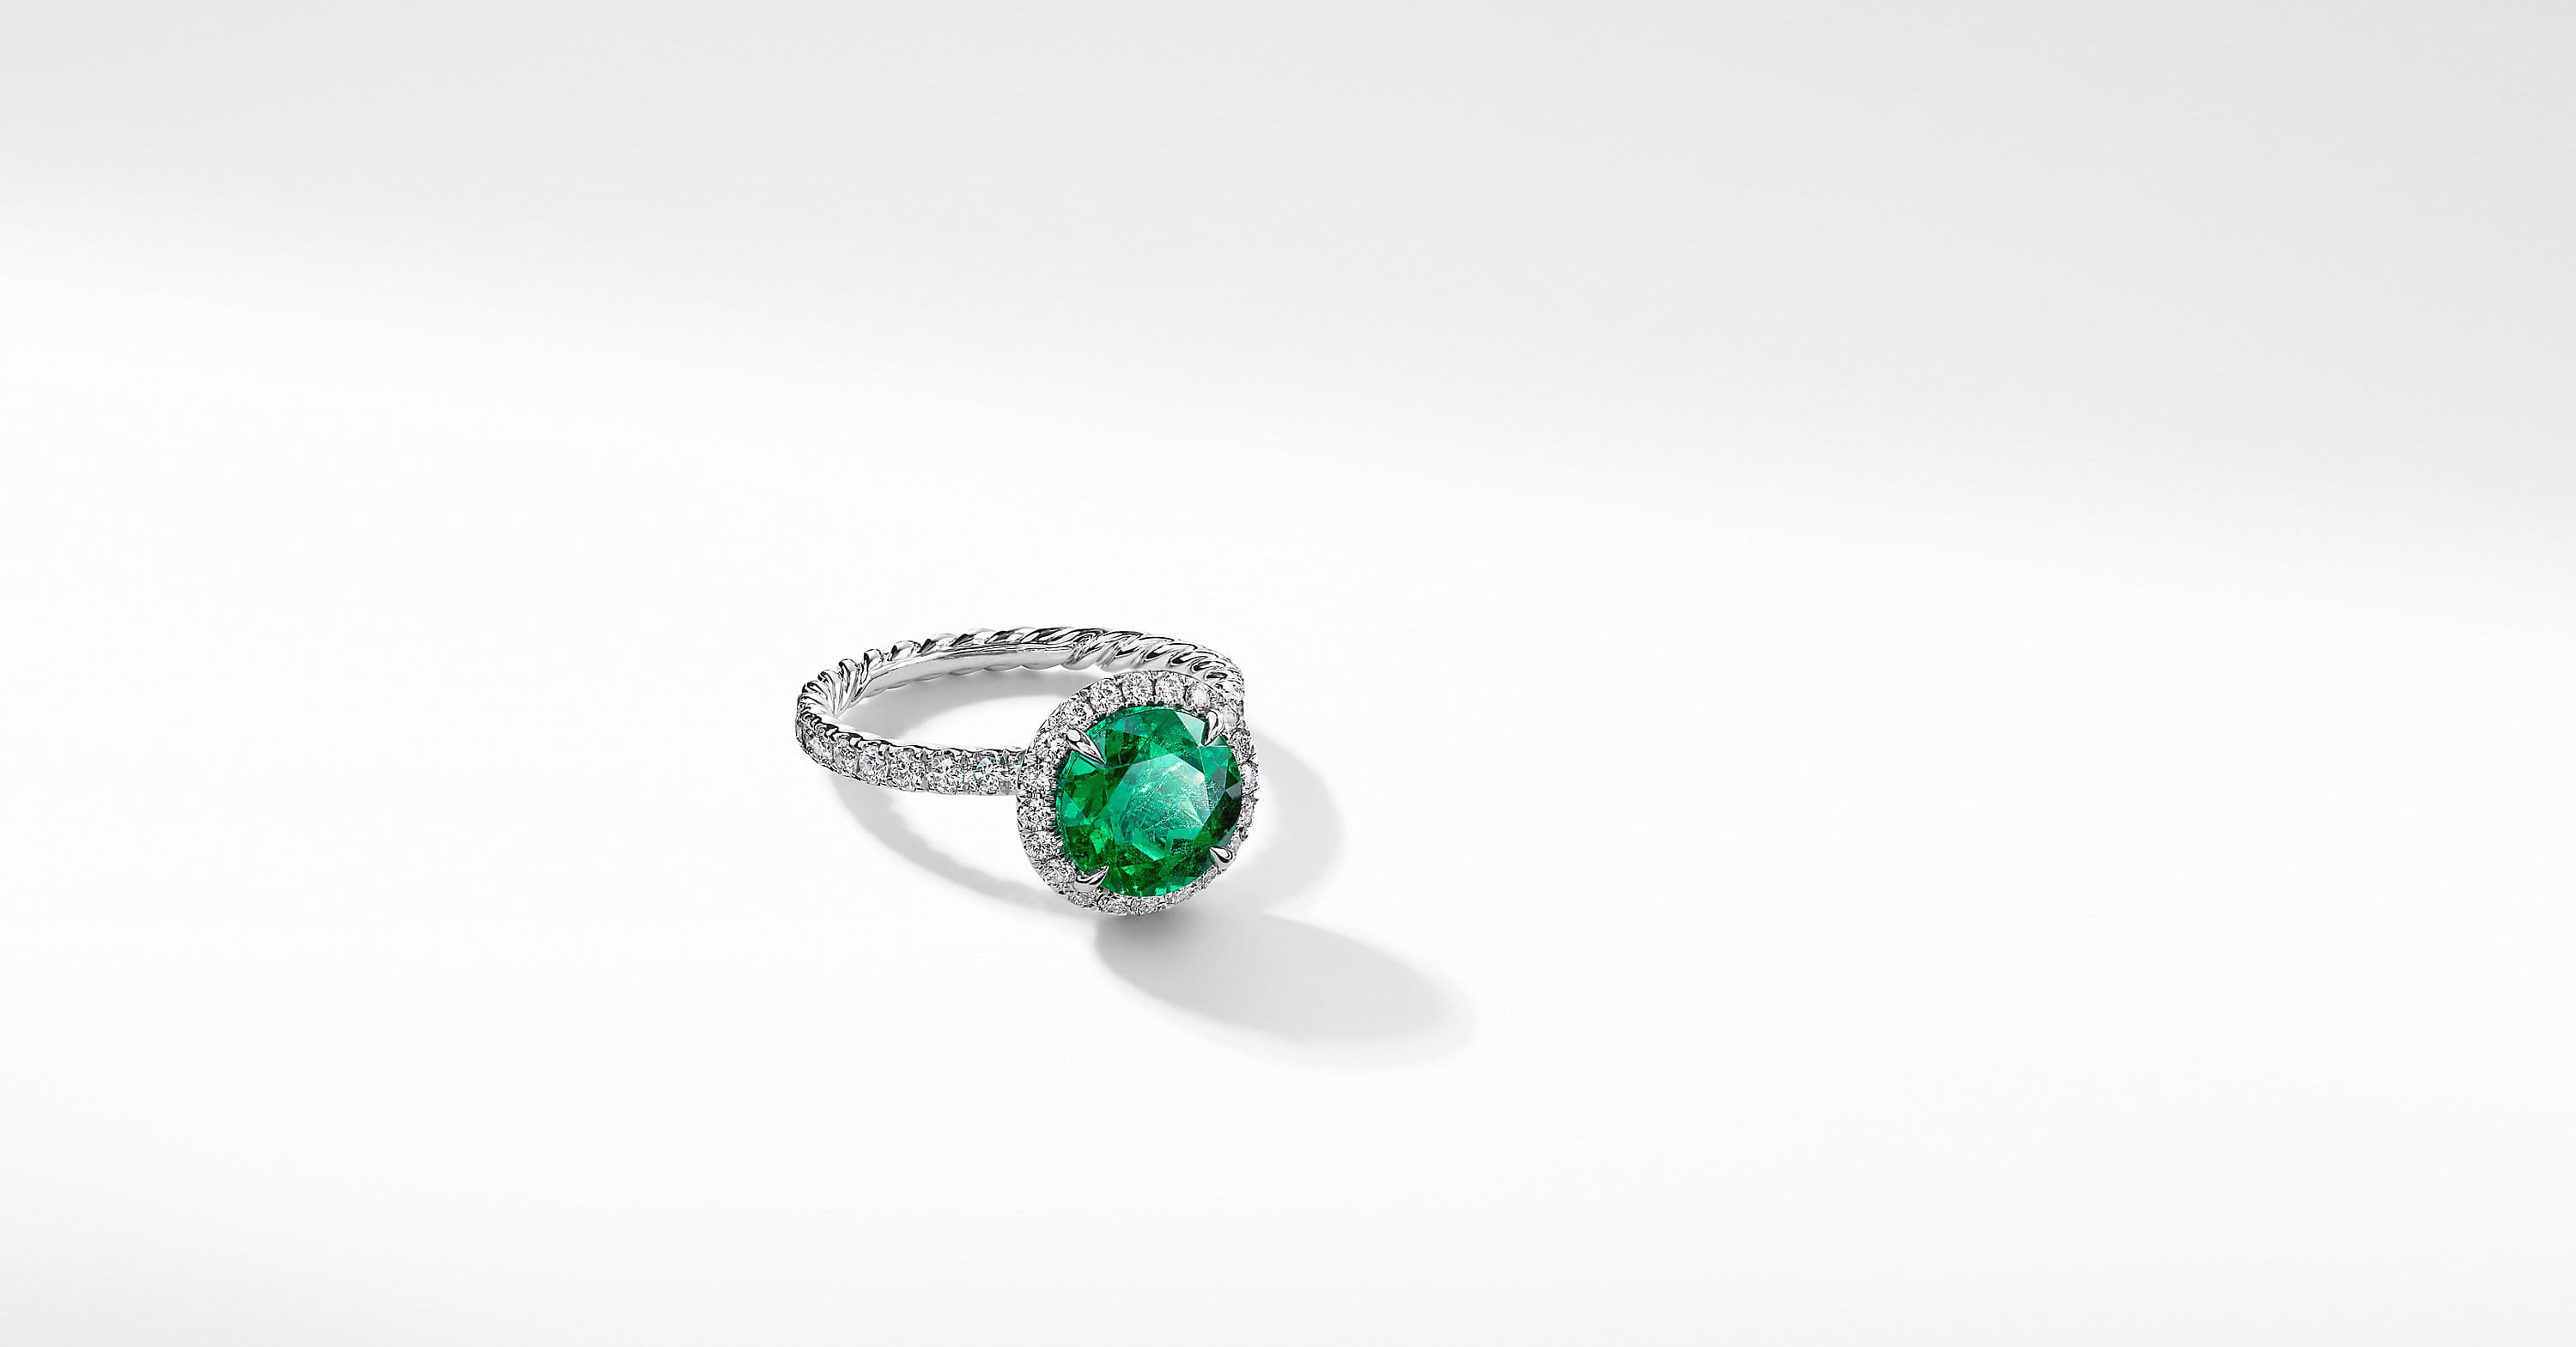 DY Capri Pavé Engagement Ring in Platinum with Green Emerald, Round